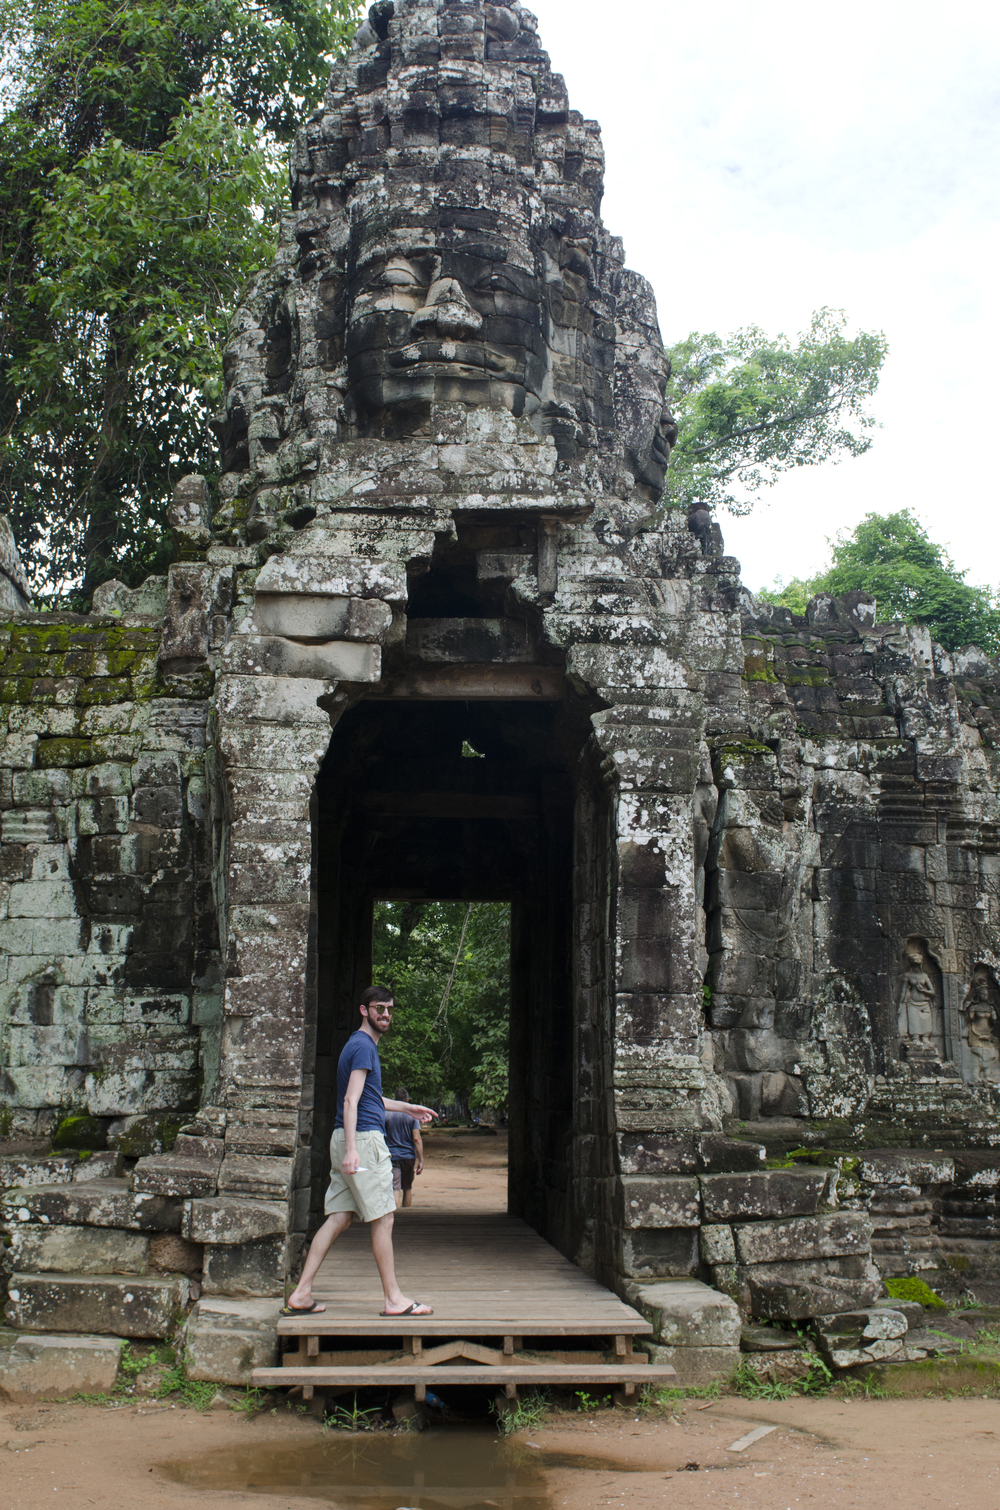 Headed into Banteay Kdei